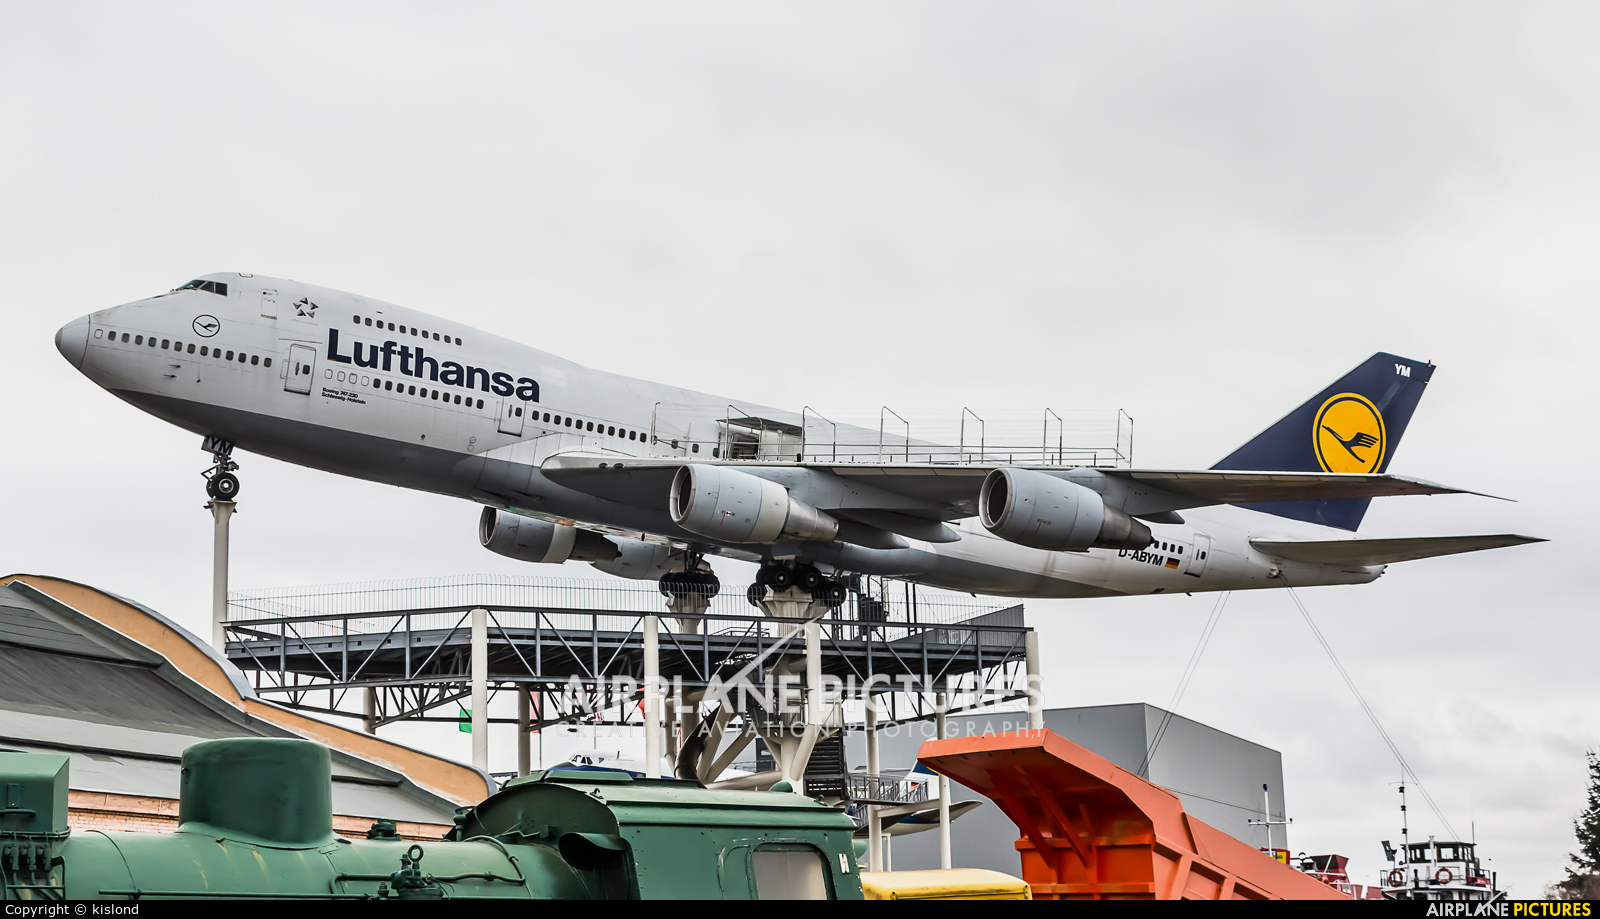 Lufthansa D-ABYM aircraft at Speyer, Technikmuseum